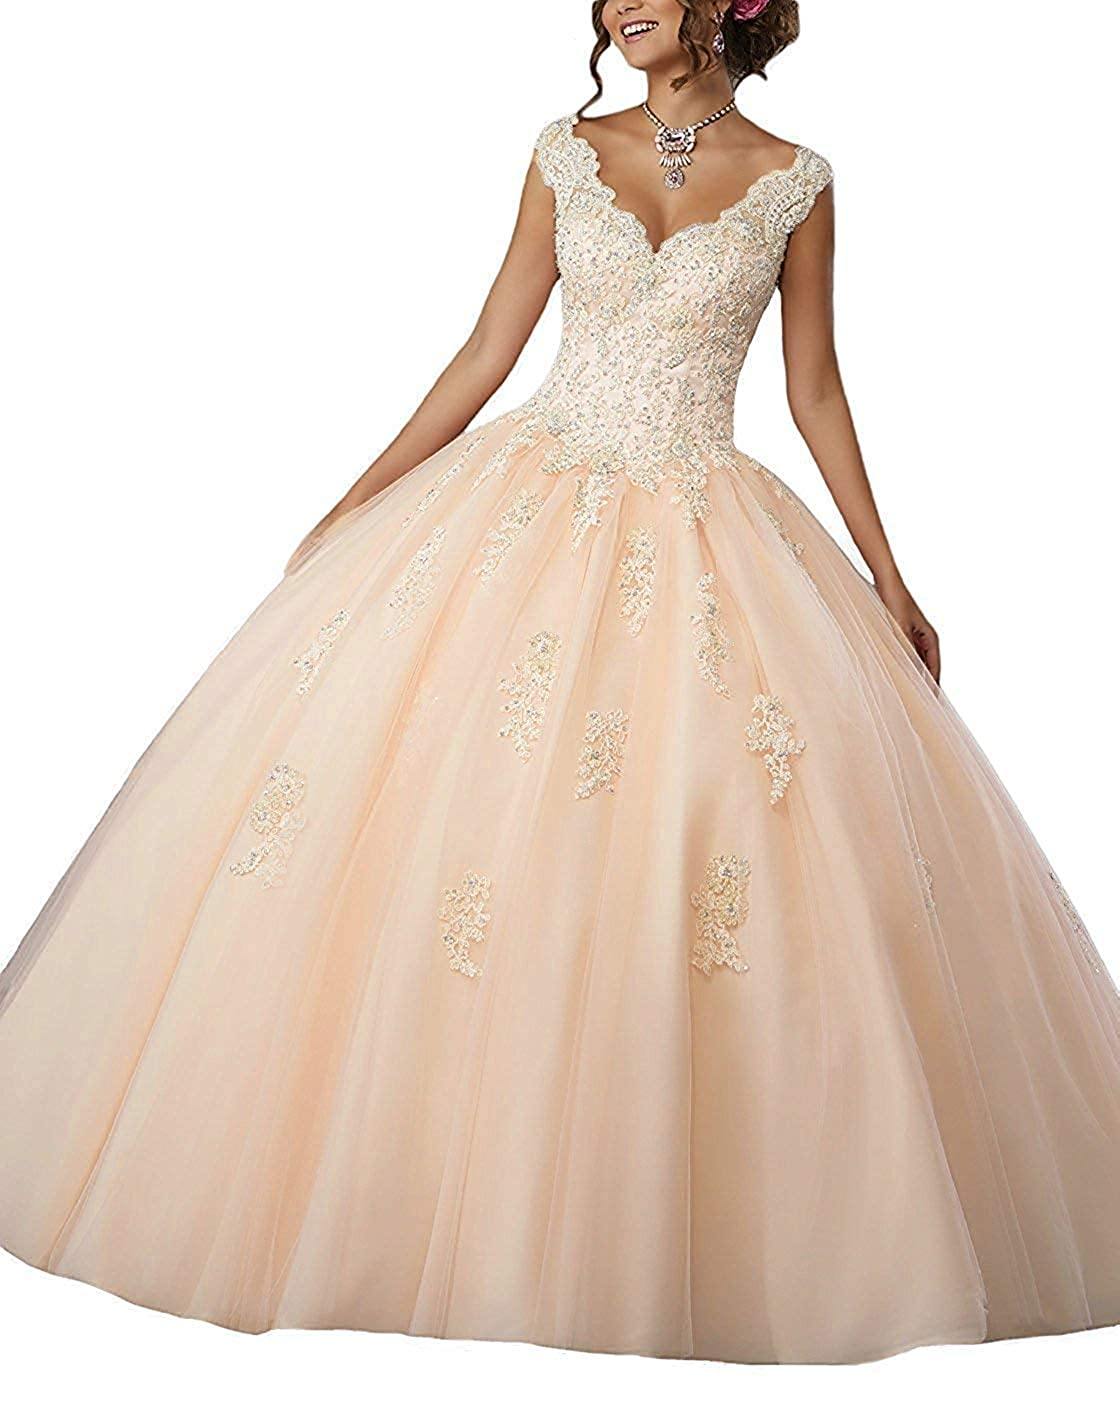 Champagne Sophie Girls' VNeck Ball Gown Beads Quinceanera Dress Lace Appliques Prom Gowns Sweet 16 S211